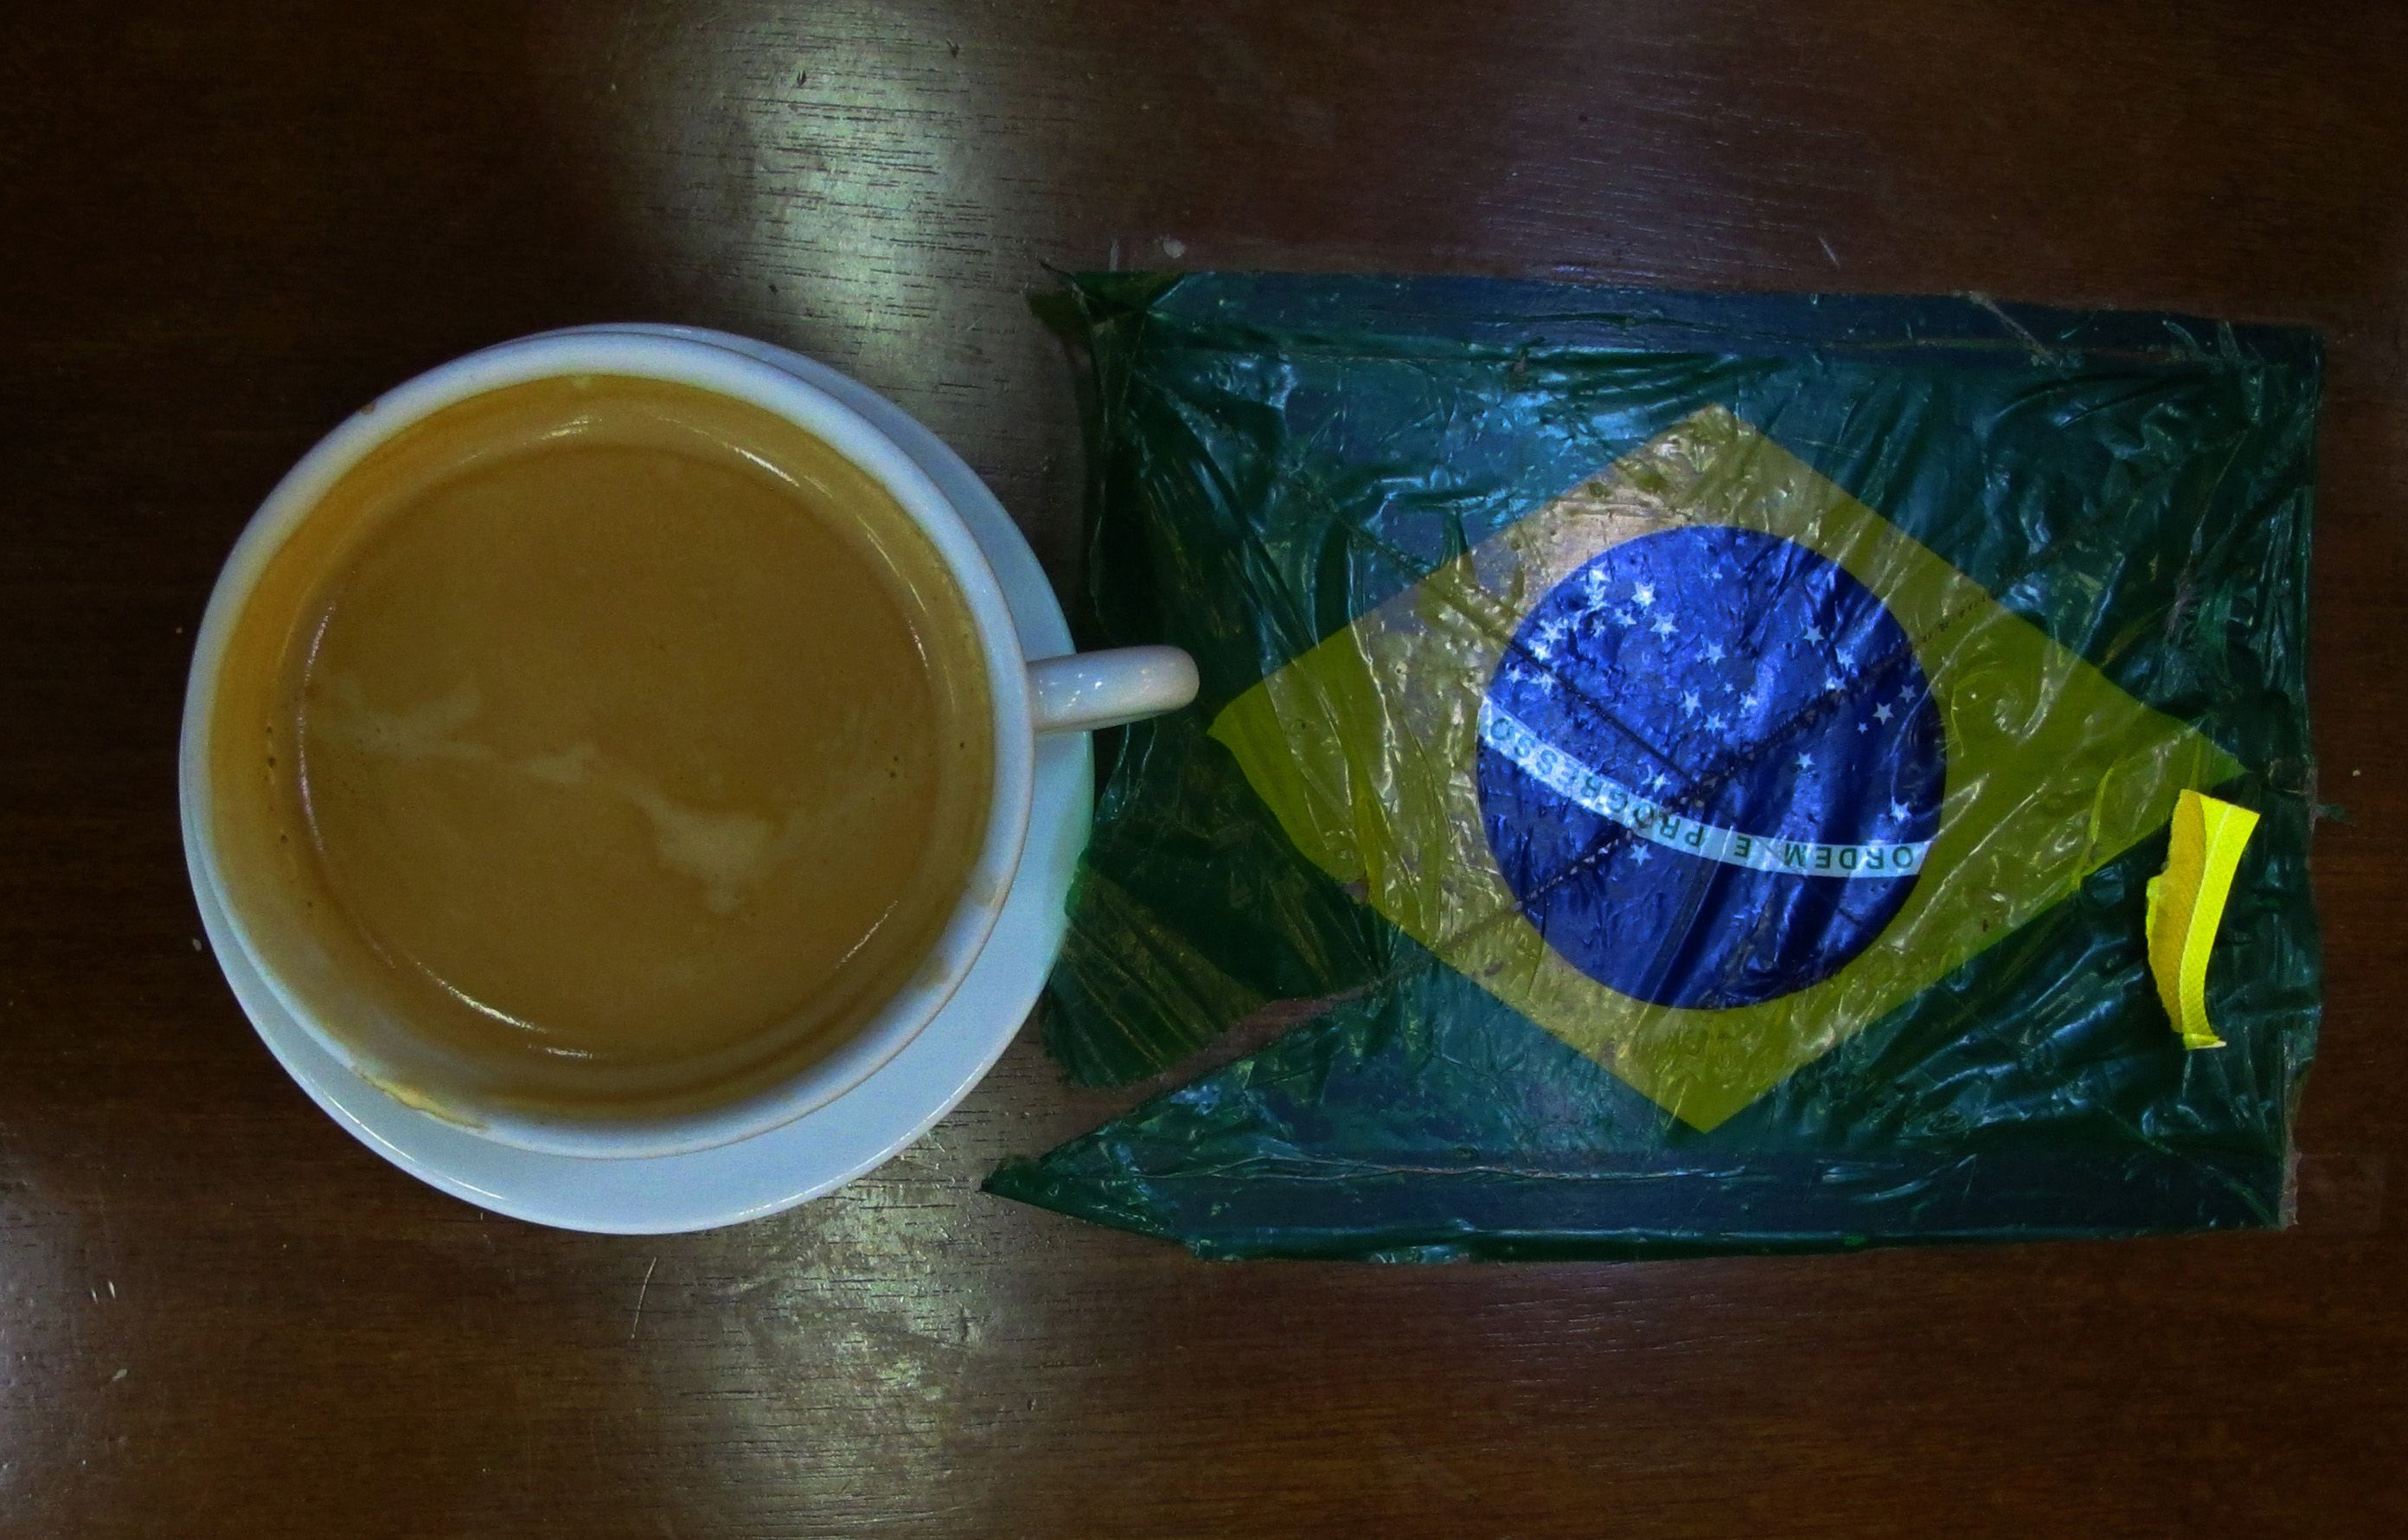 A Brazillian coffee is pictured at the International airport in Rio de Janeiro June 11, 2014. In a project called 'On The Sidelines' Reuters photographers share pictures showing their own quirky and creative view of the 2014 World Cup in Brazil. REUTERS/Michael Dalder (BRAZIL - Tags: SPORT SOCCER WORLD CUP SOCIETY) - RTR3T8NQ